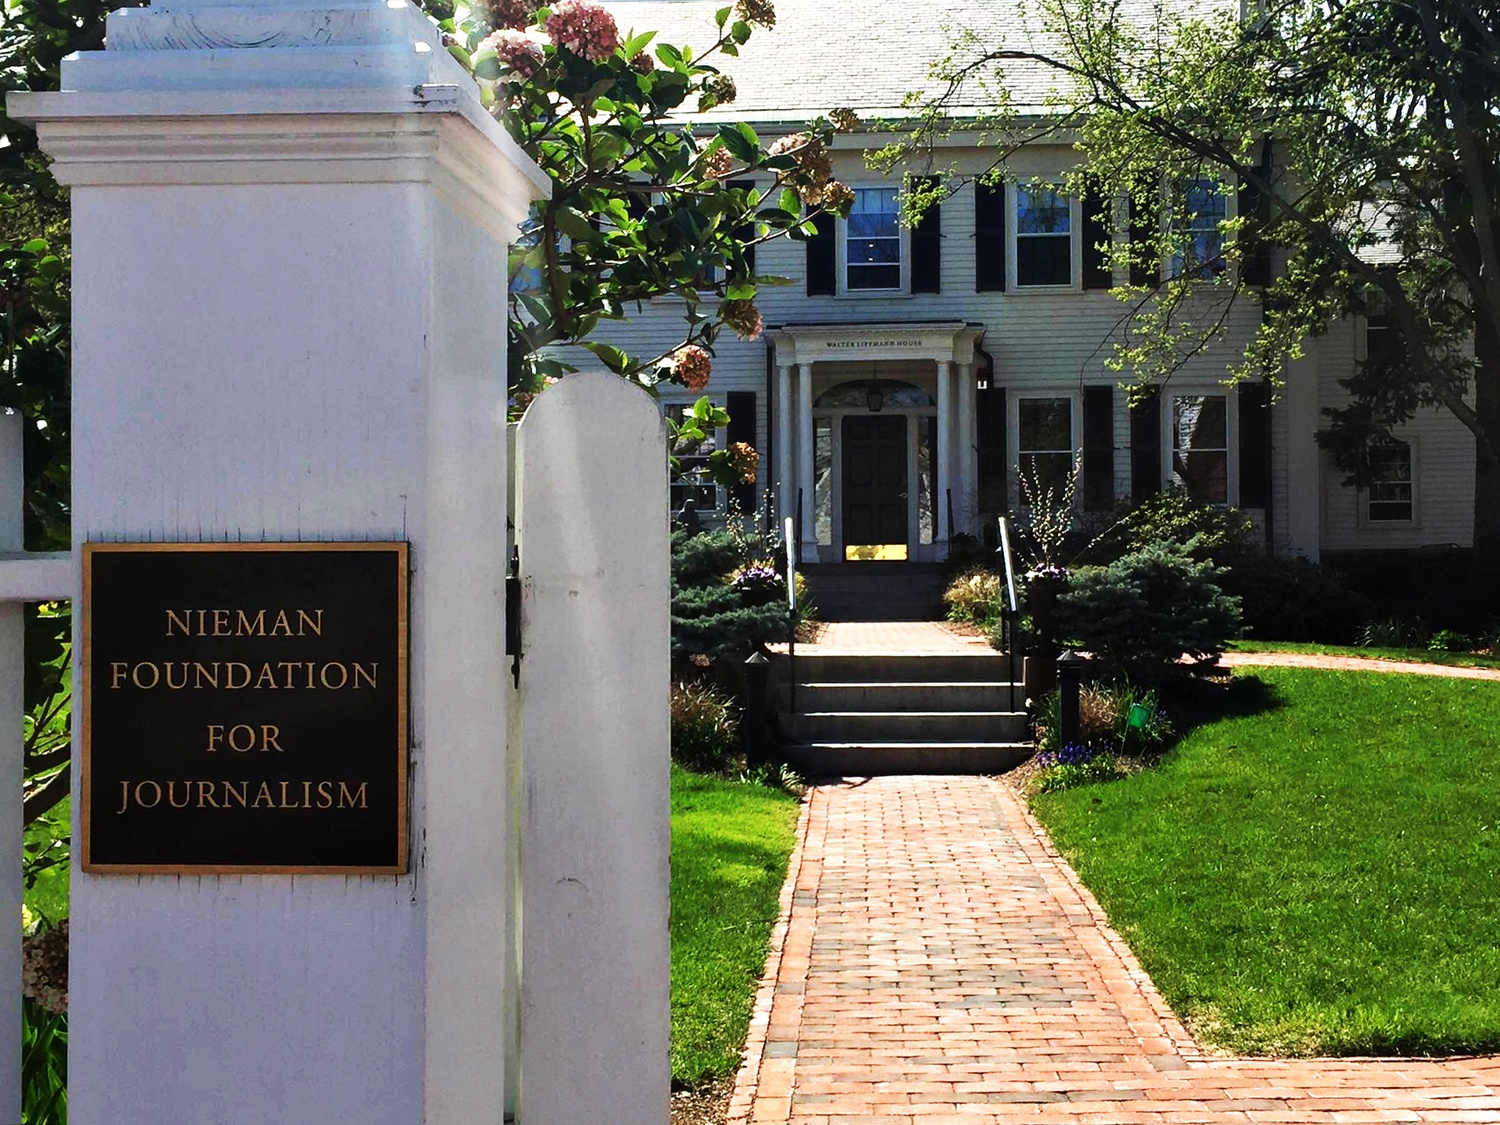 Joshua Benton — the founder and former director of the Nieman Lab within the Nieman Foundation for Journalism at Harvard — is accused in a lawsuit of 'doxxing' a Temple University journalism professor.